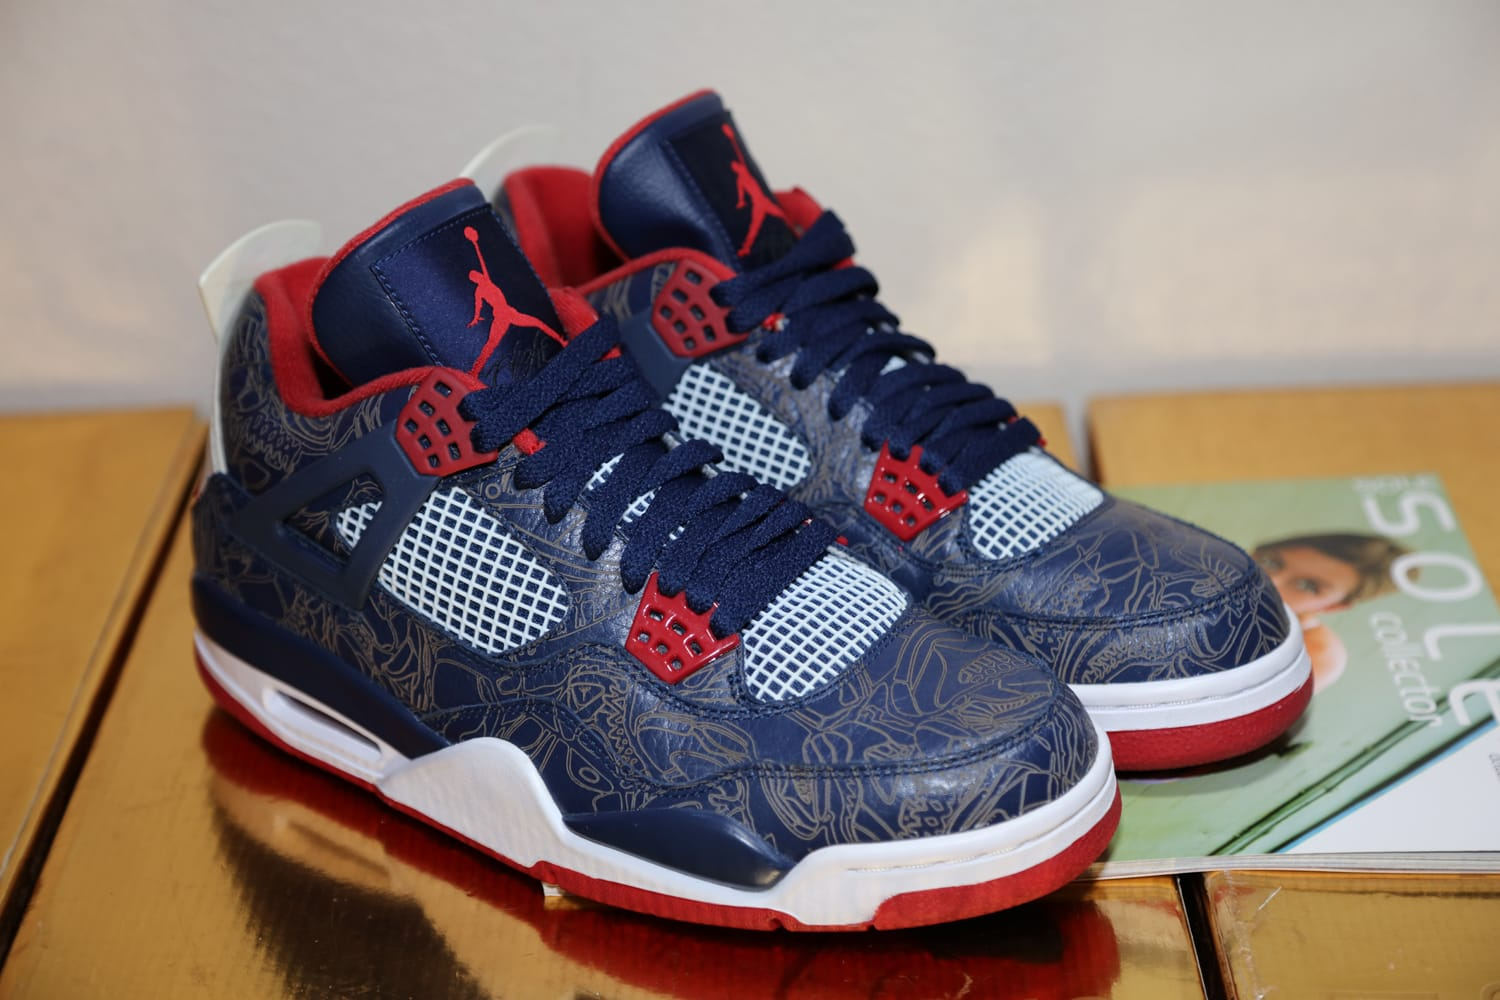 Air Jordan 4 Carmelo Anthony Olympic Laser PE